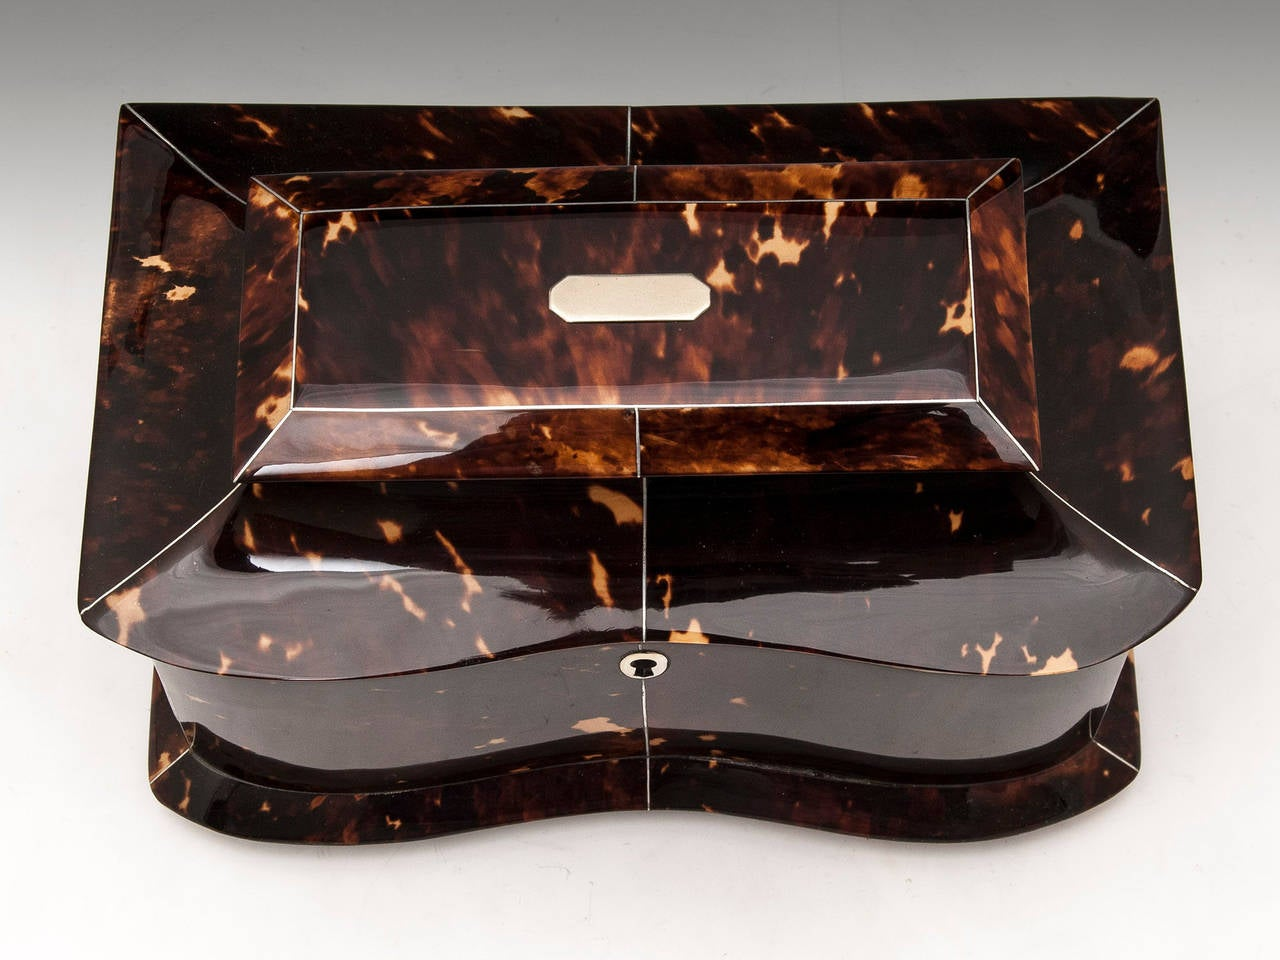 Regency Tortoiseshell Tea Caddy In Good Condition For Sale In Northampton, United Kingdom